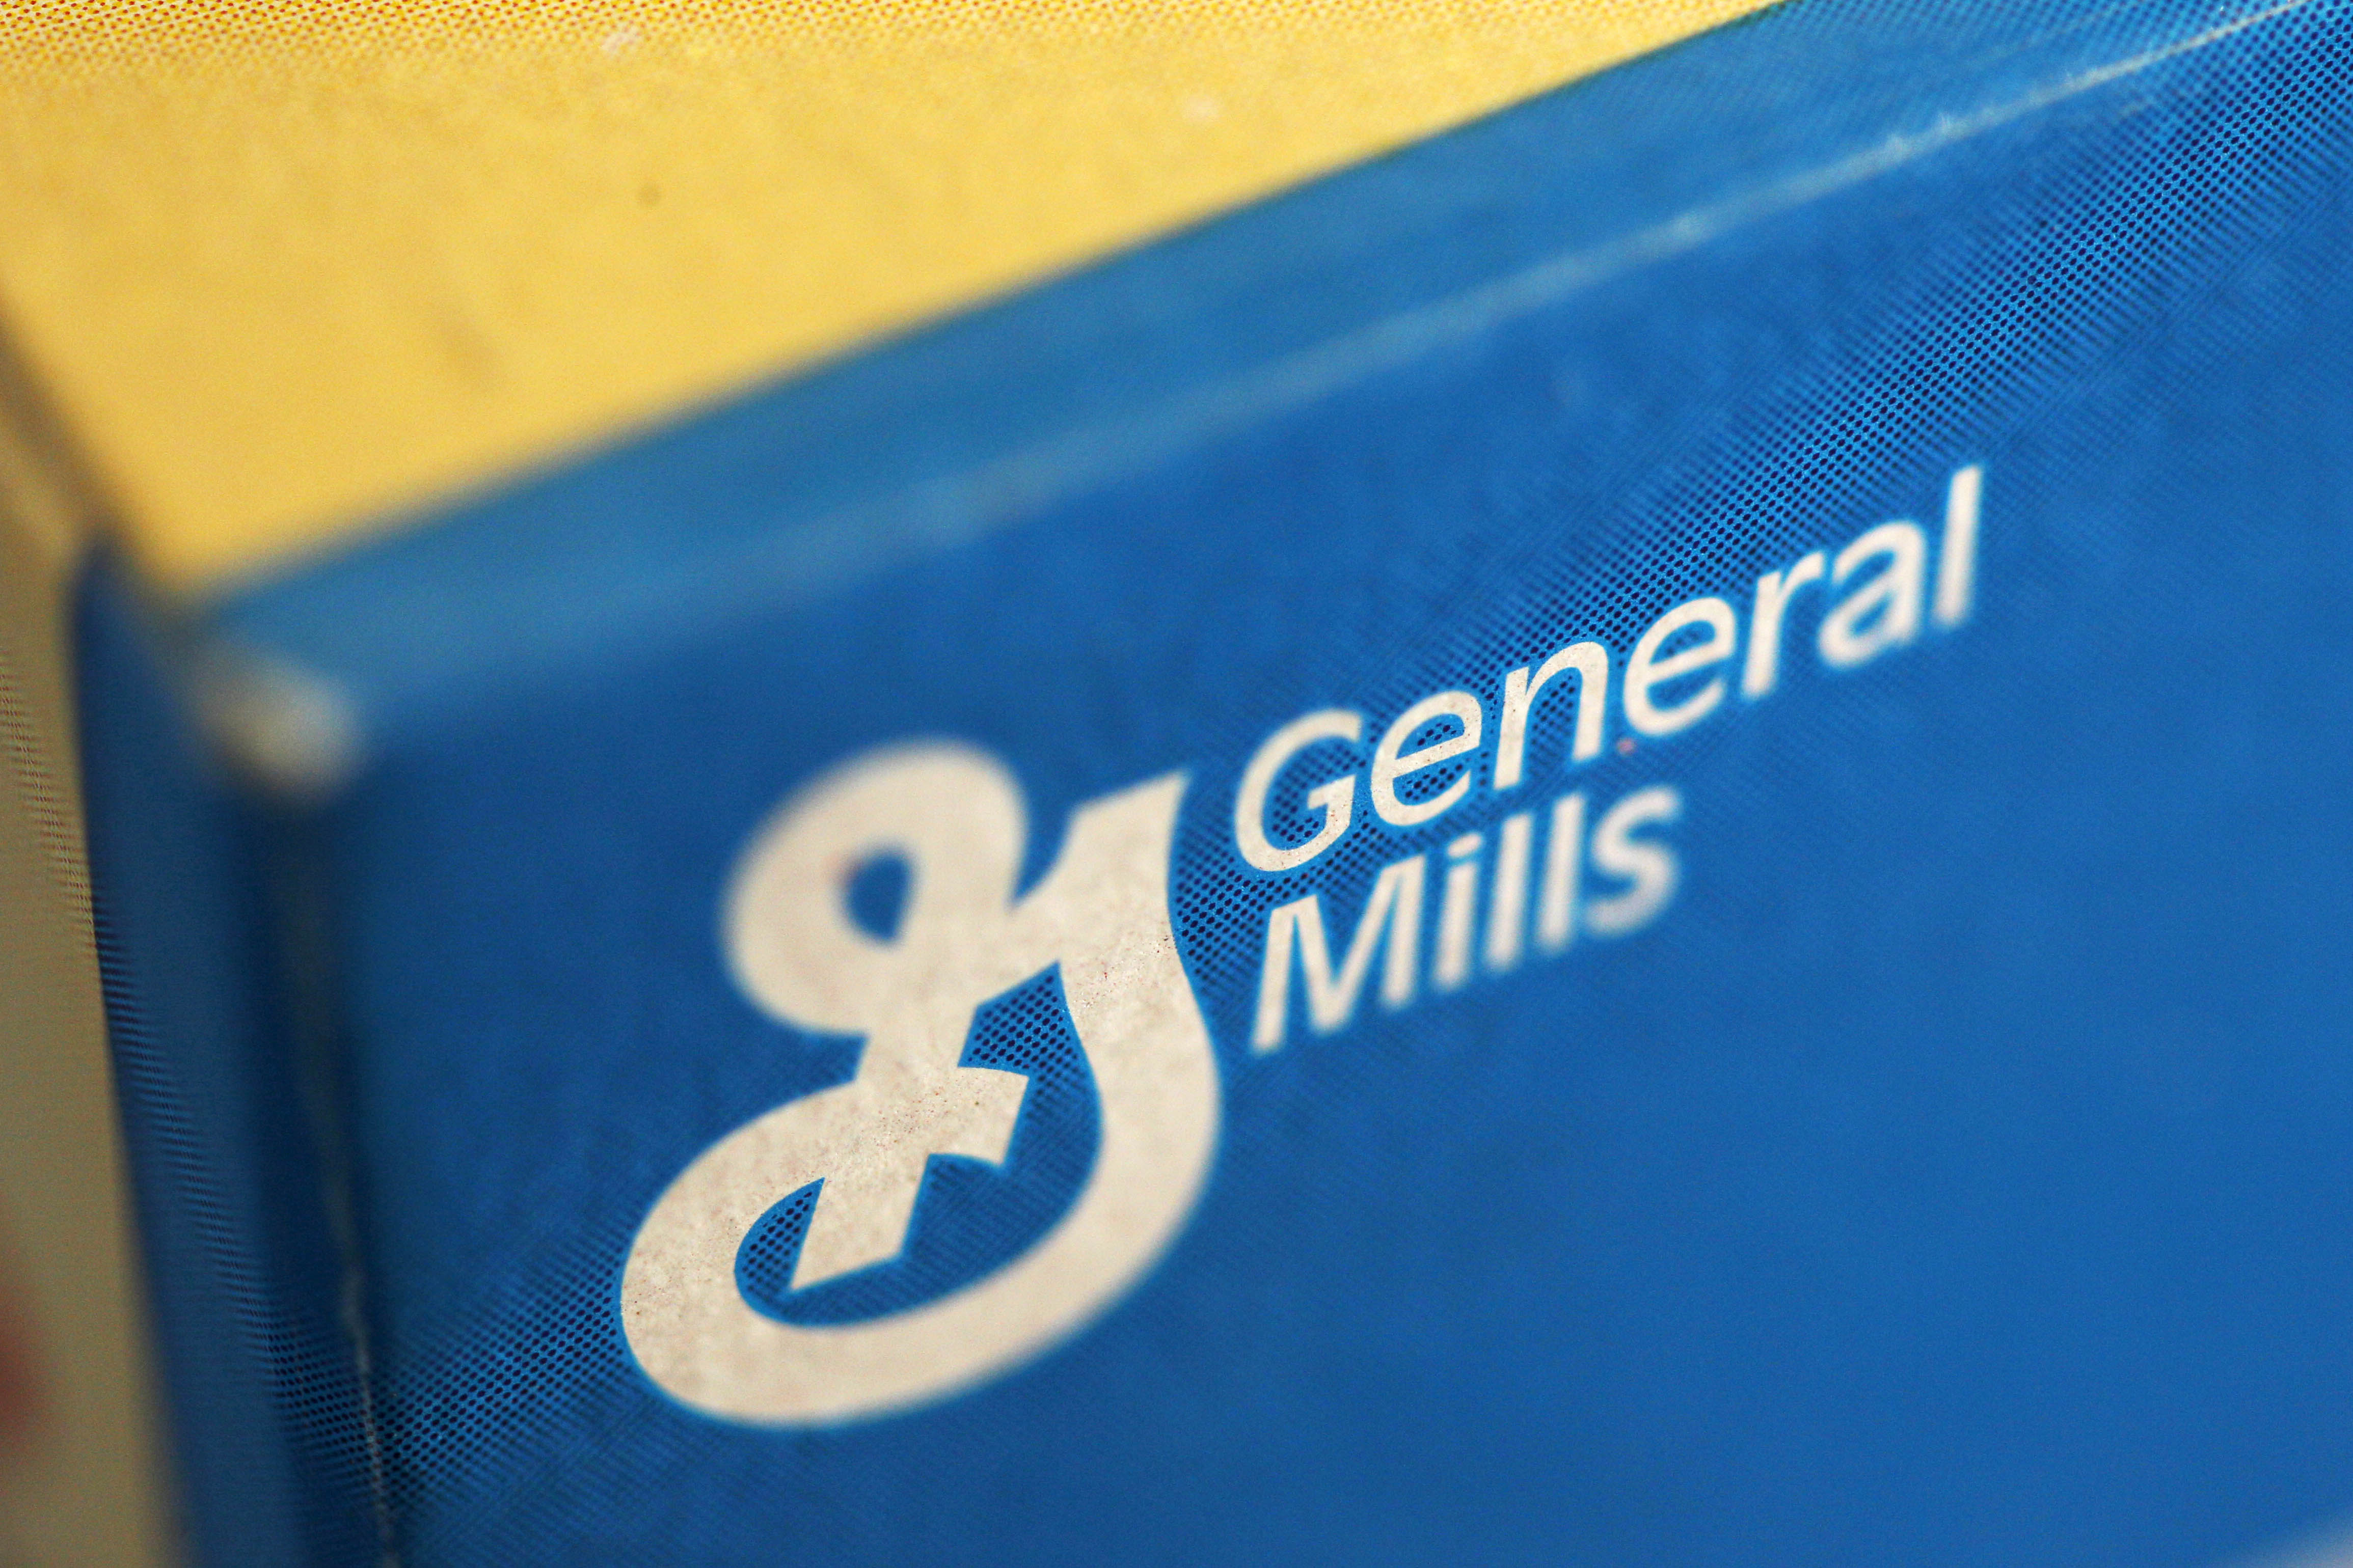 General Mills logo on a cereal box.